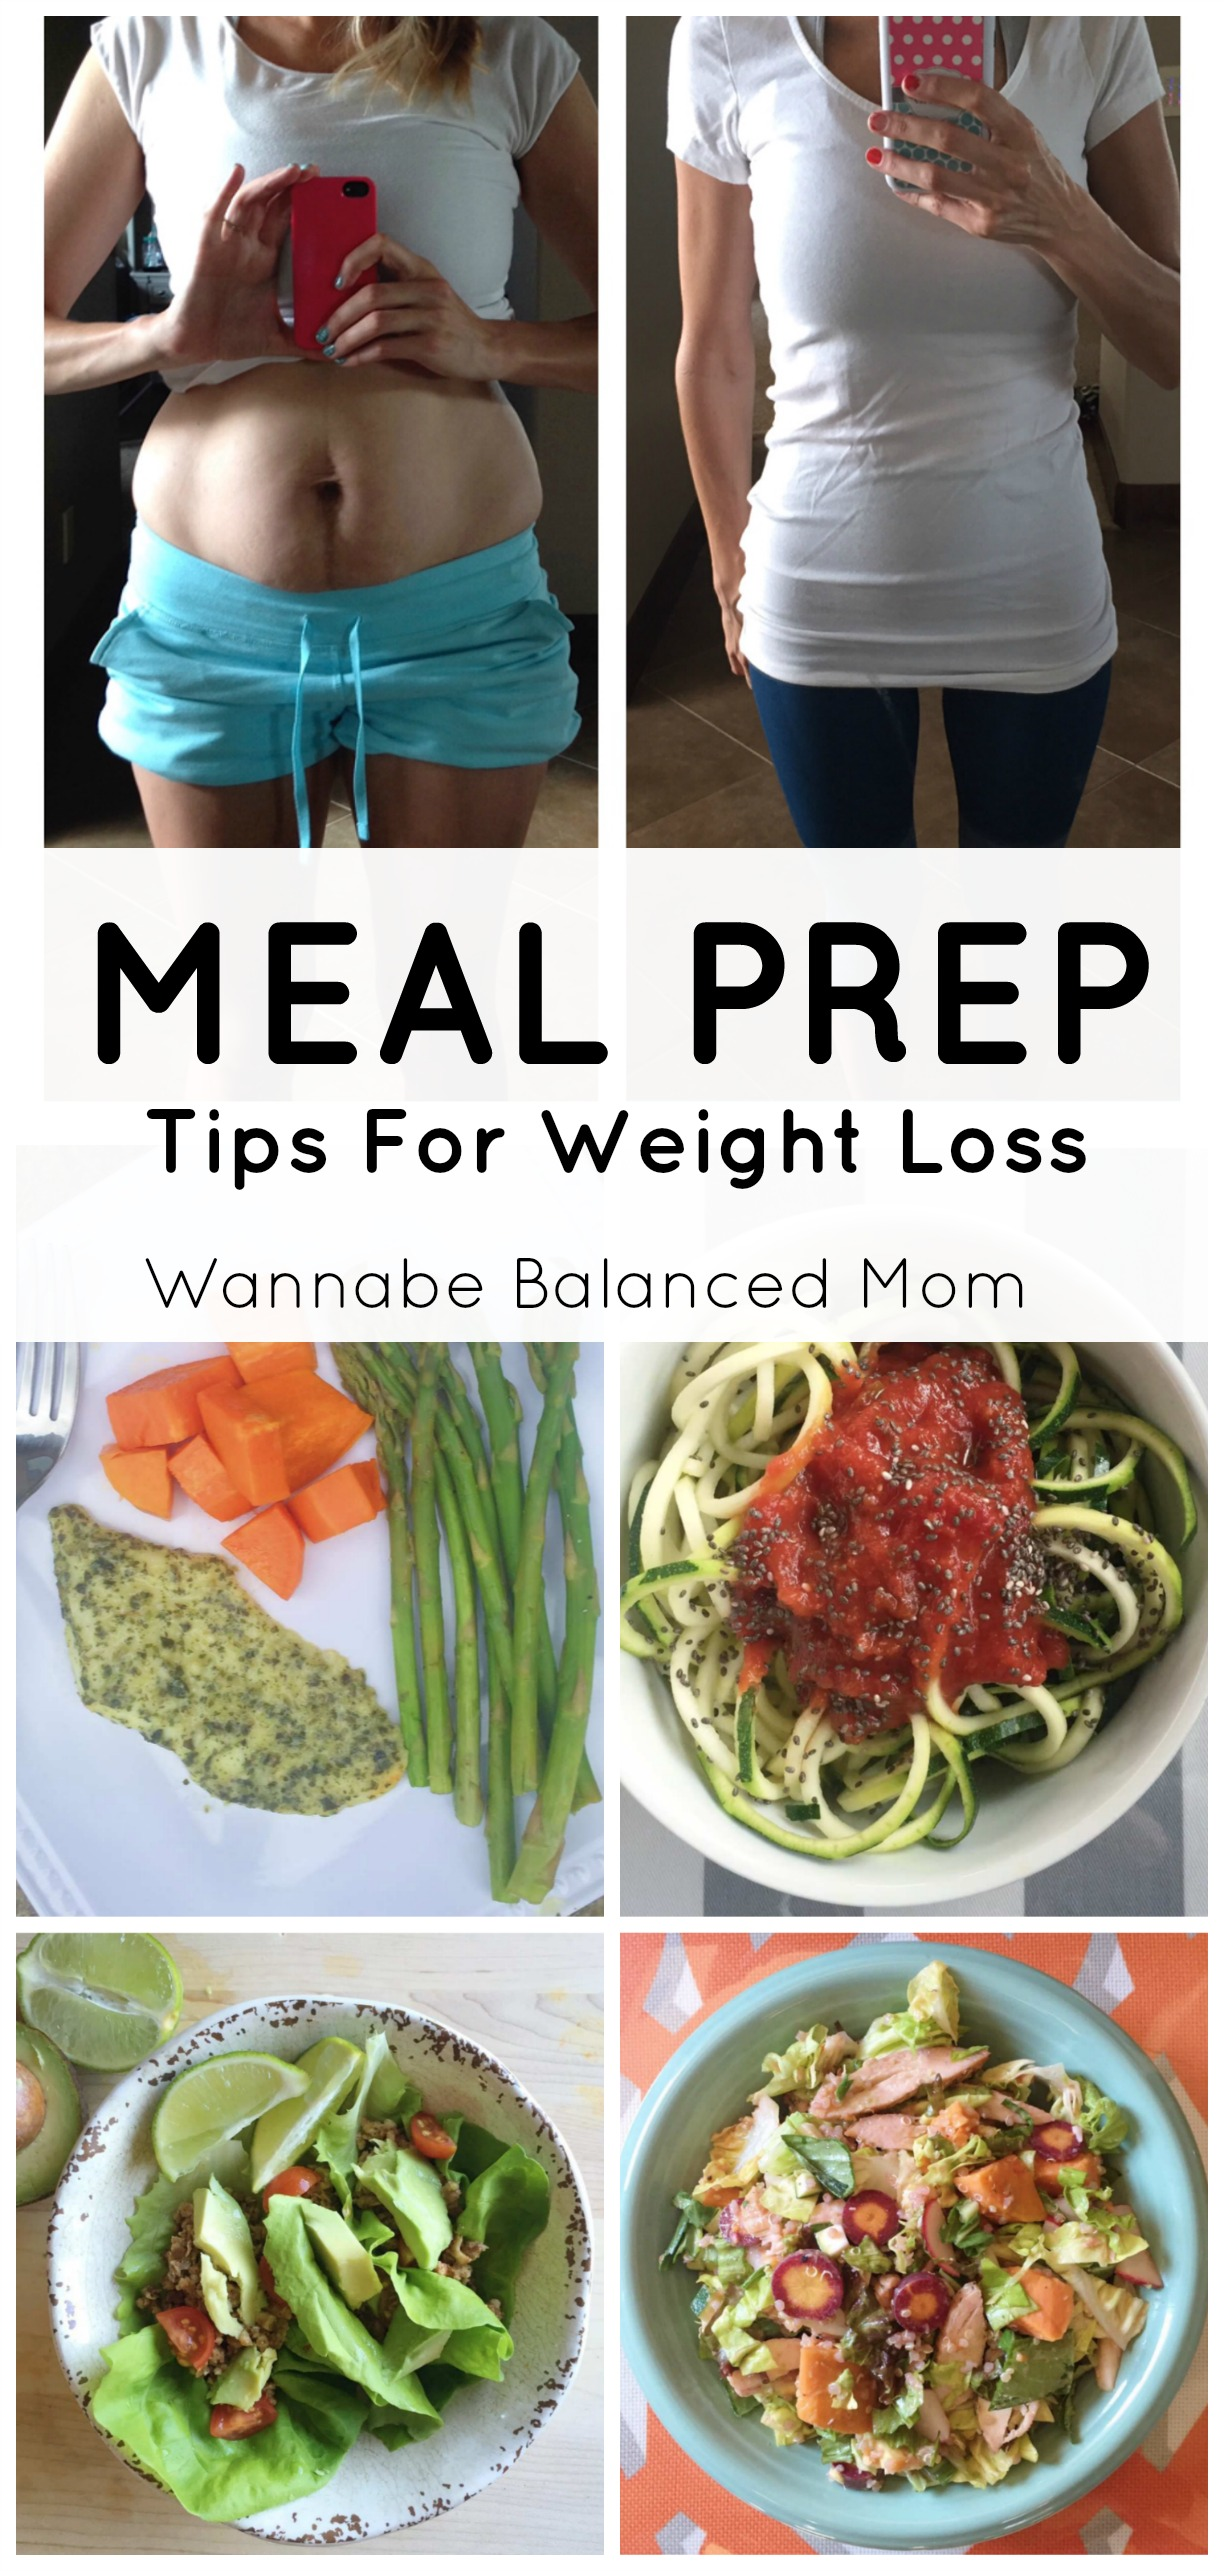 how to meal prep for weight loss 7 meal ideas wannabe balanced mom